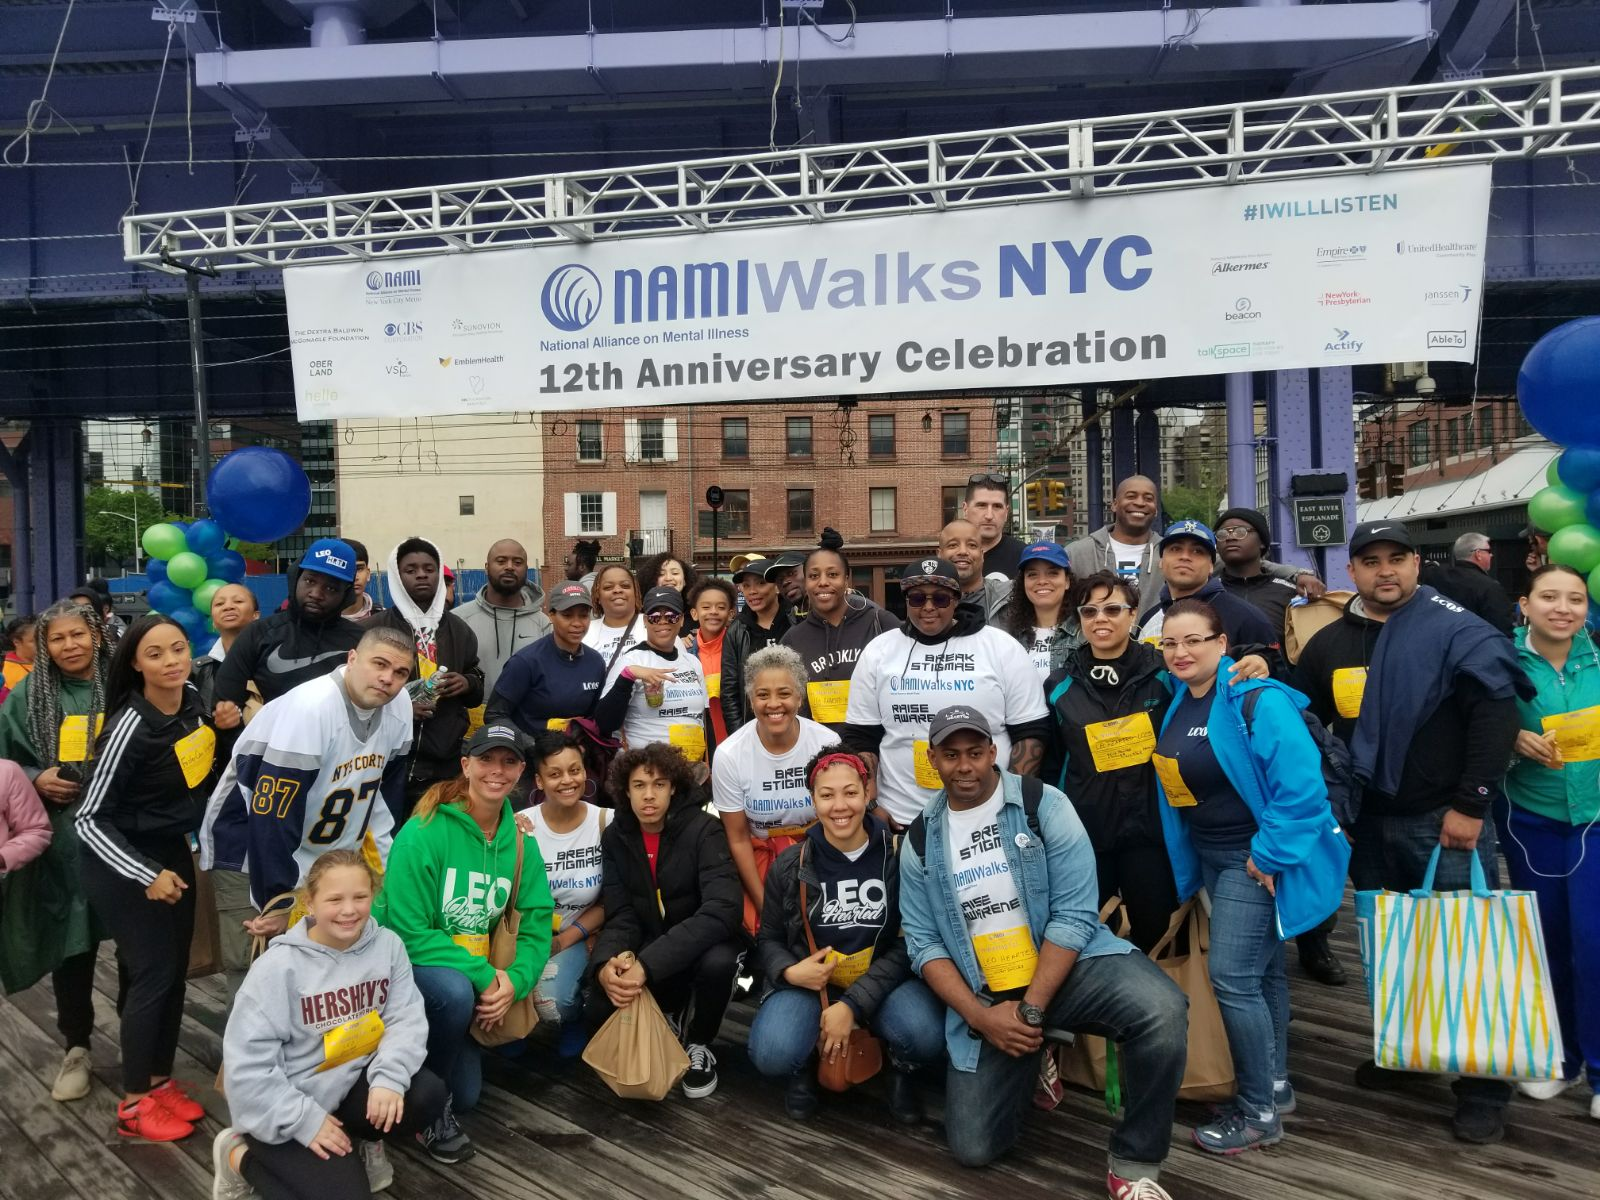 NAMI Walks - The LEO Hearted team showing support and raising awareness for NAMI and mental Illnesswww.nami.org